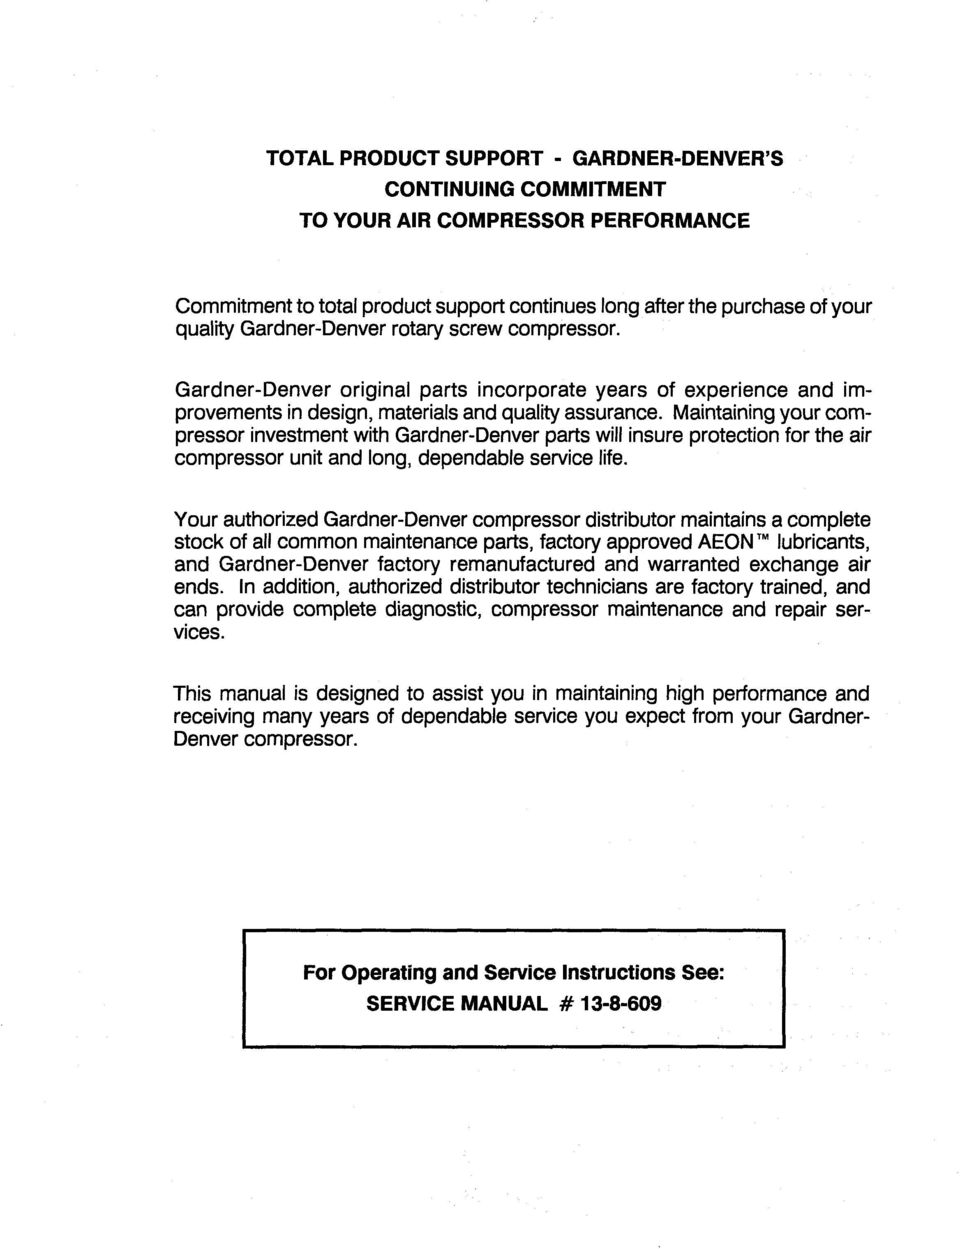 medium resolution of maintaining your compressor investment with gardner denver parts will insure protection for the air compressor